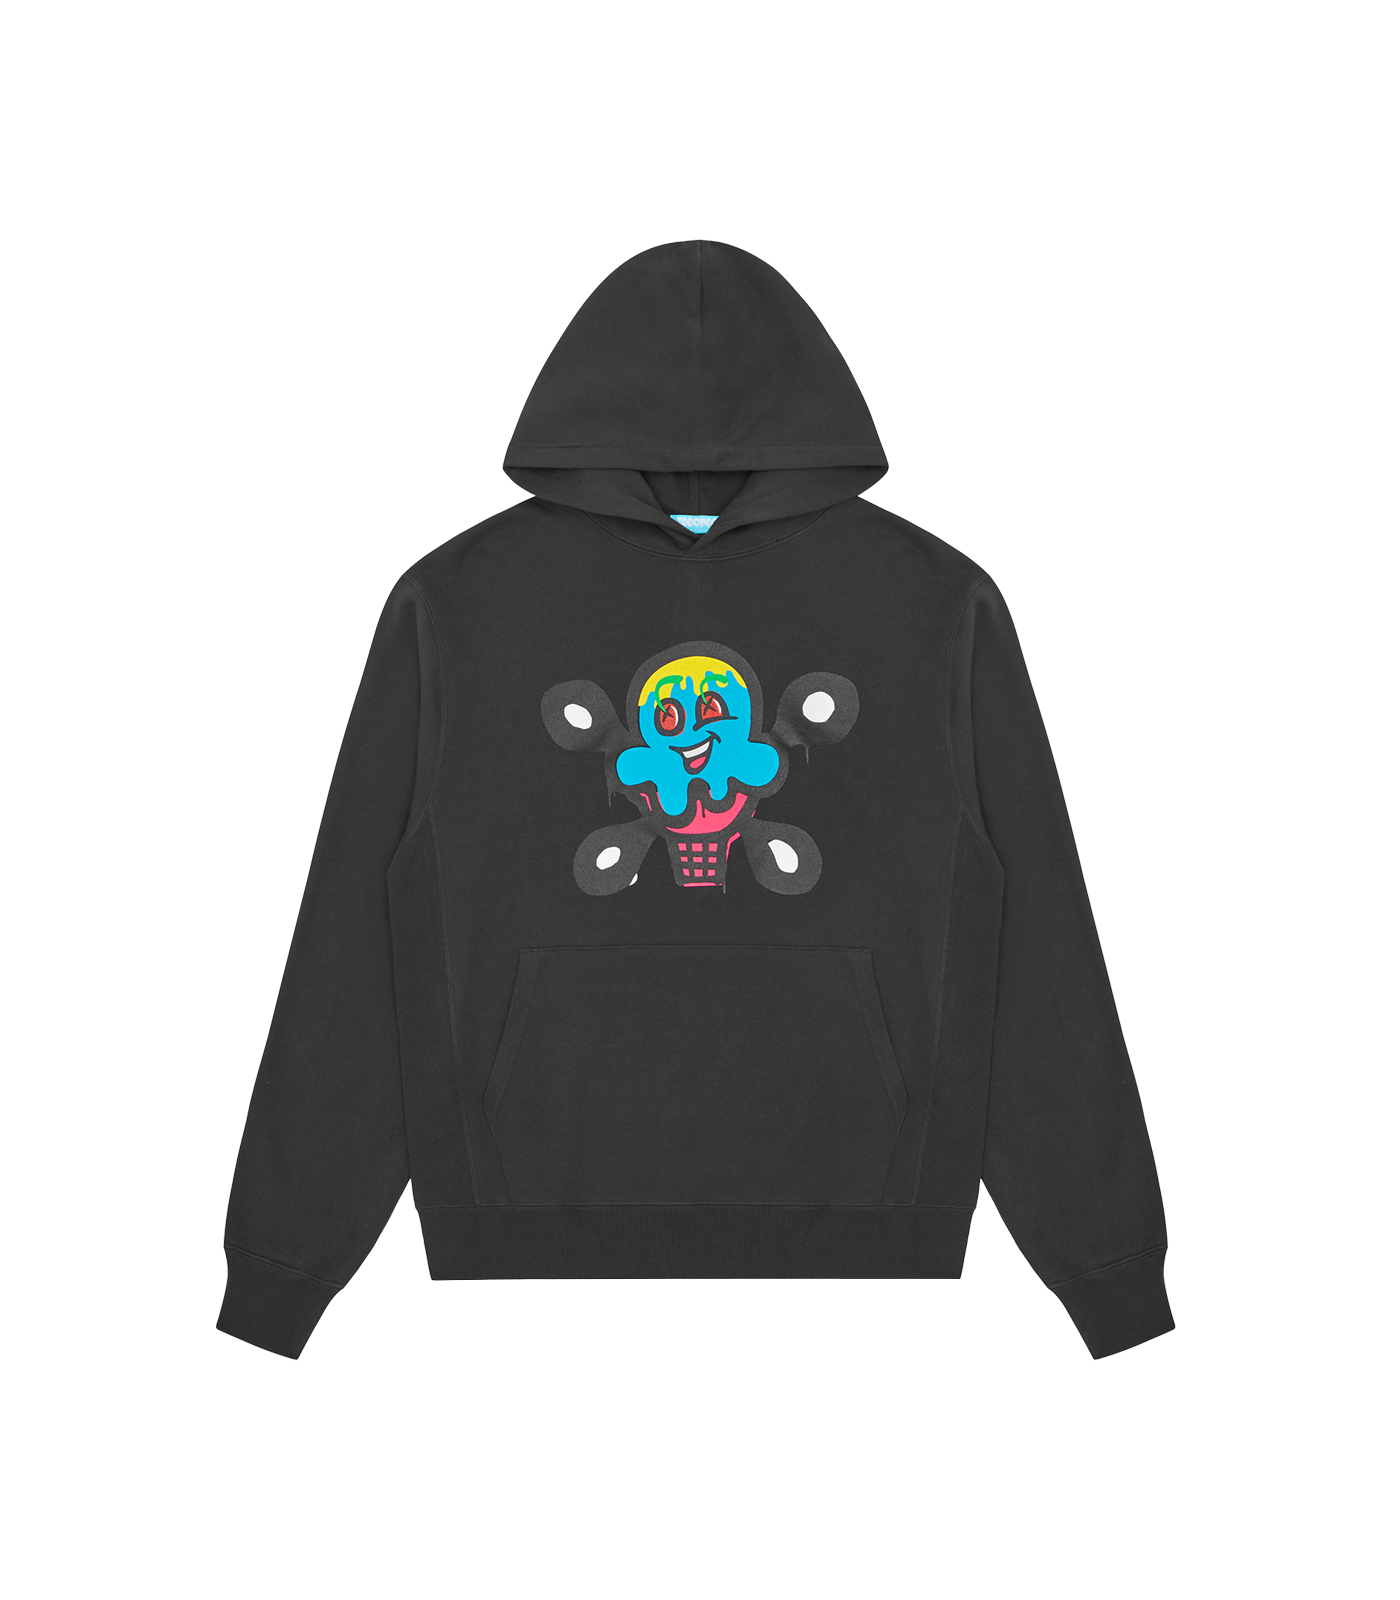 CONE 1 HOODIE - CHARCOAL